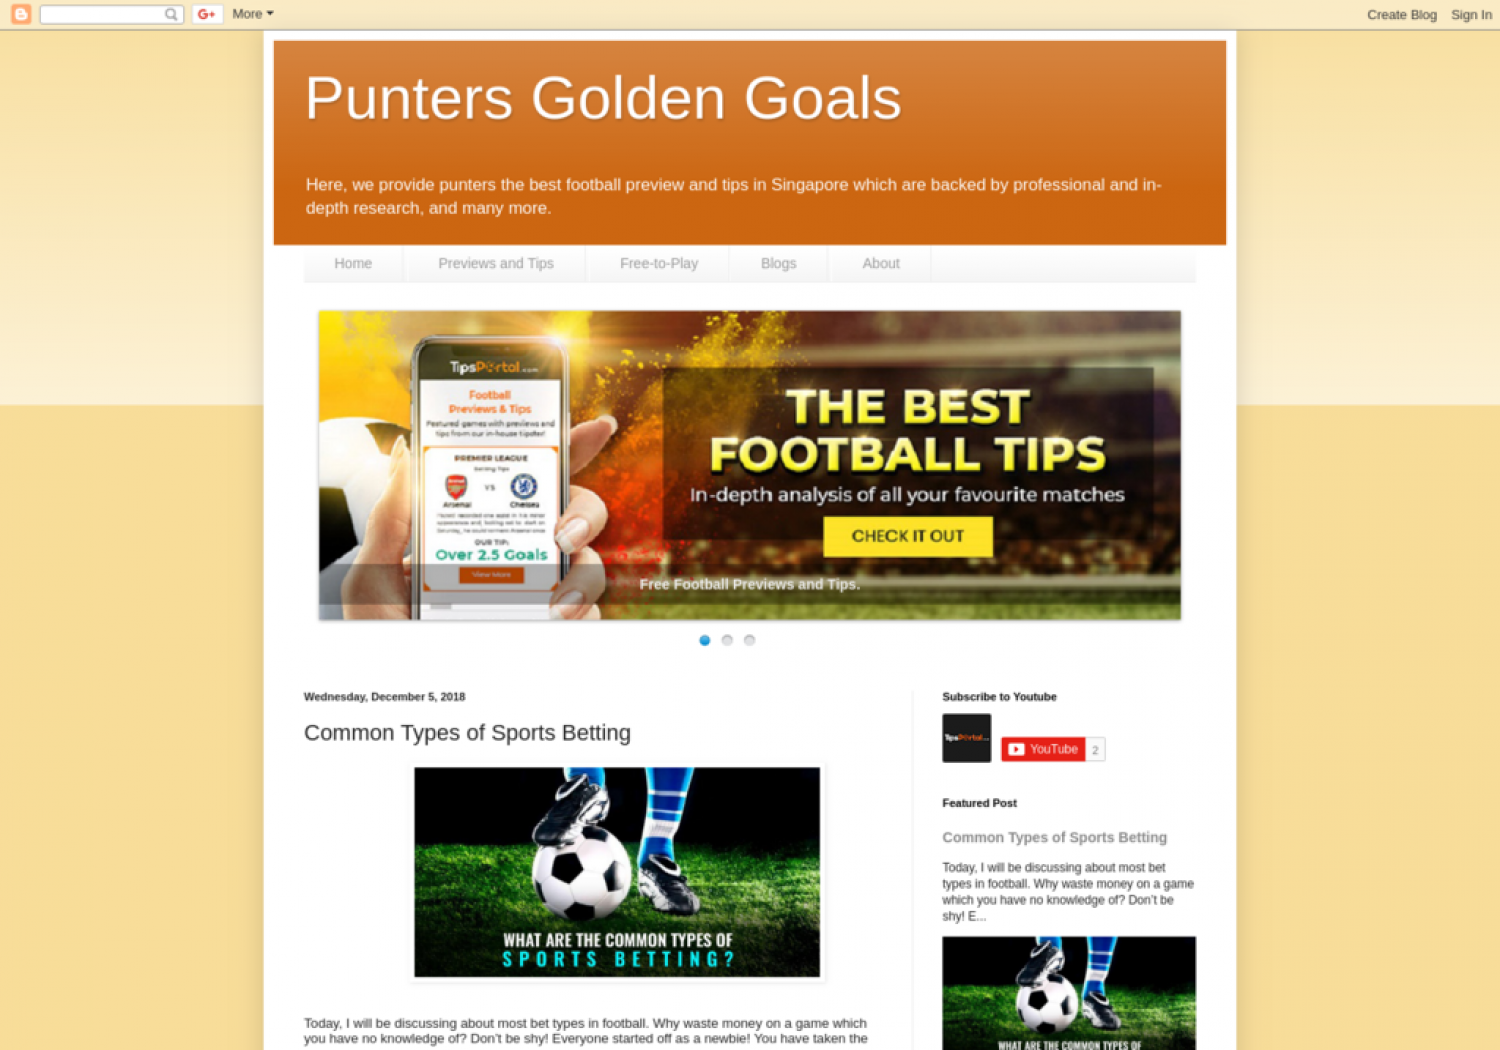 Common Types of Sports Betting Infographic